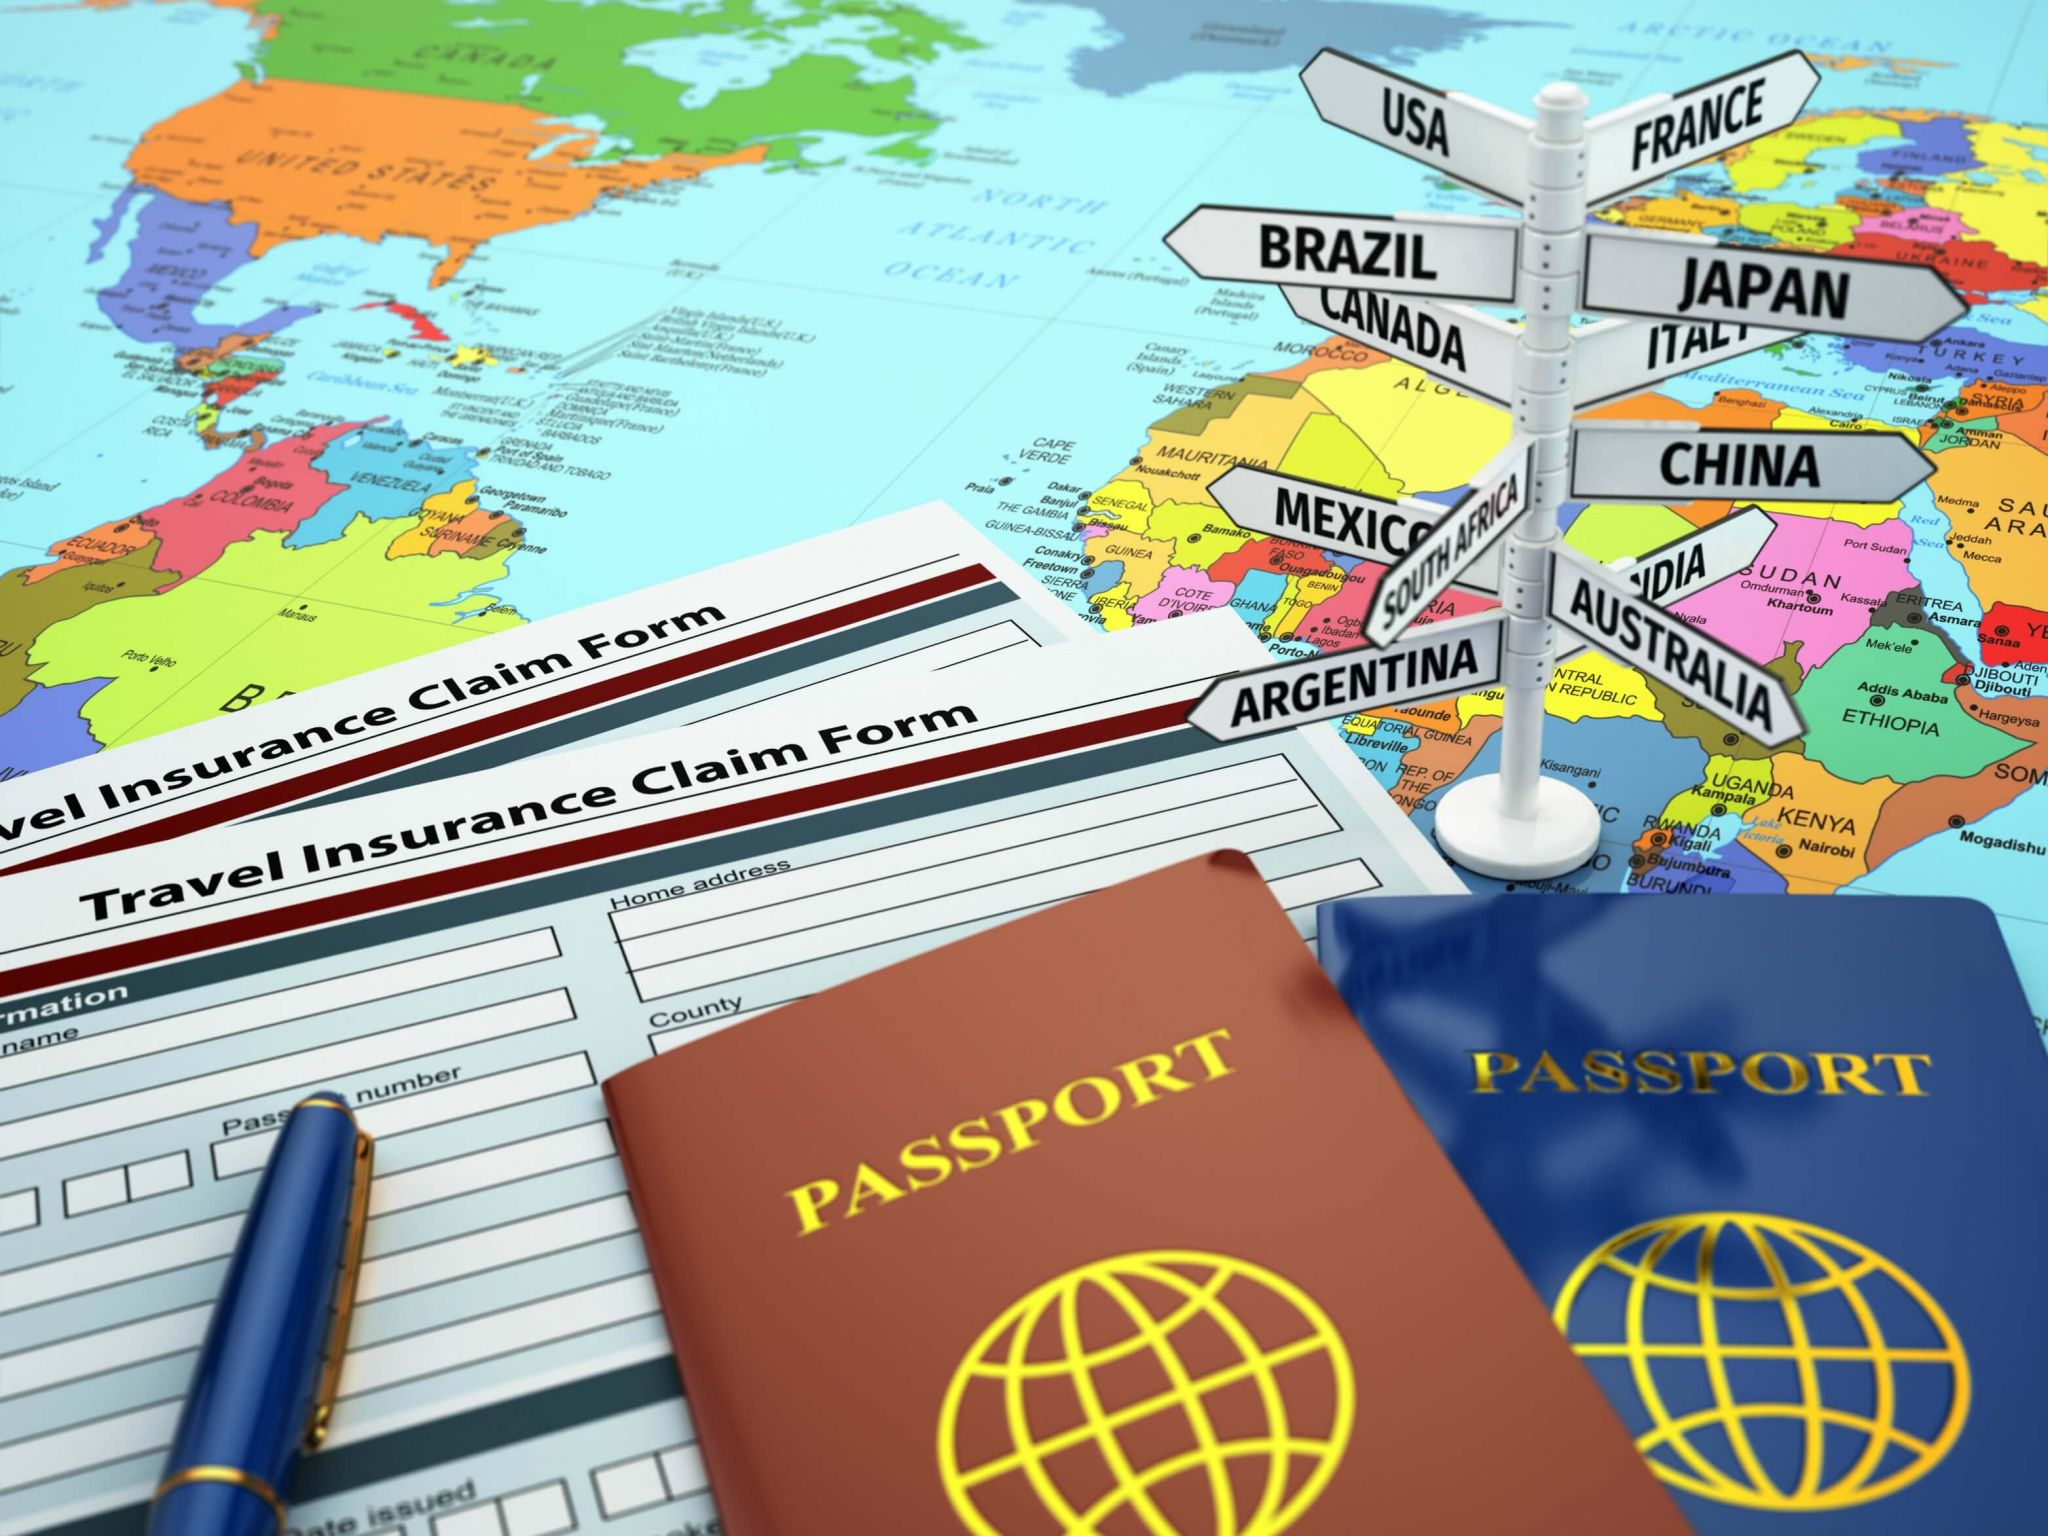 travel insurance with pre existing medical conditions - map of the world with claim forms and passports